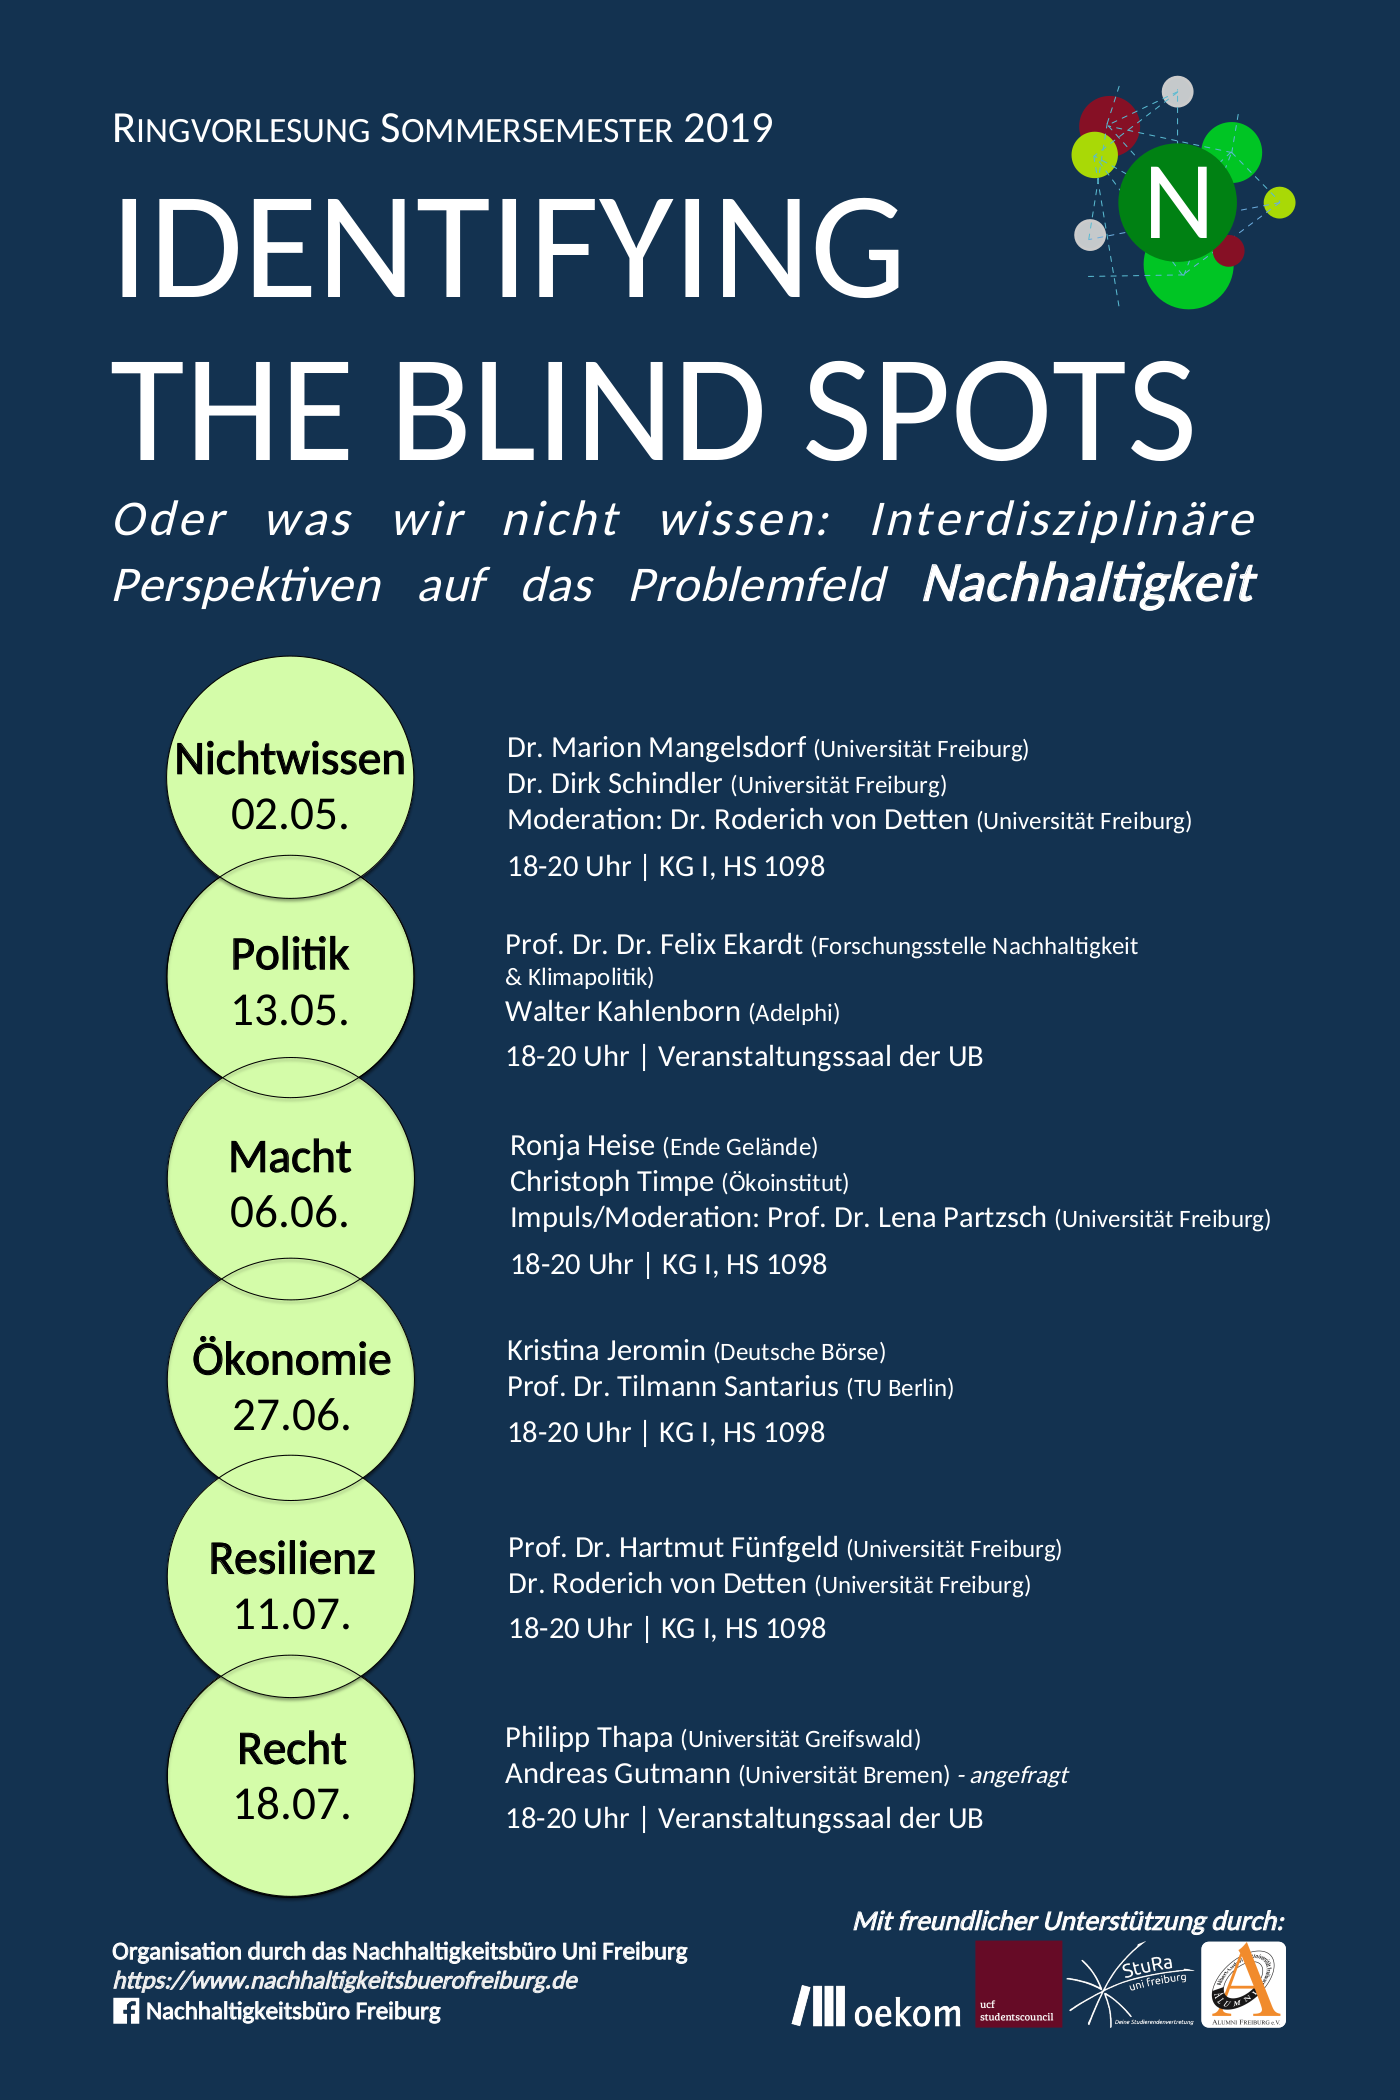 Identifying the Blind Spots